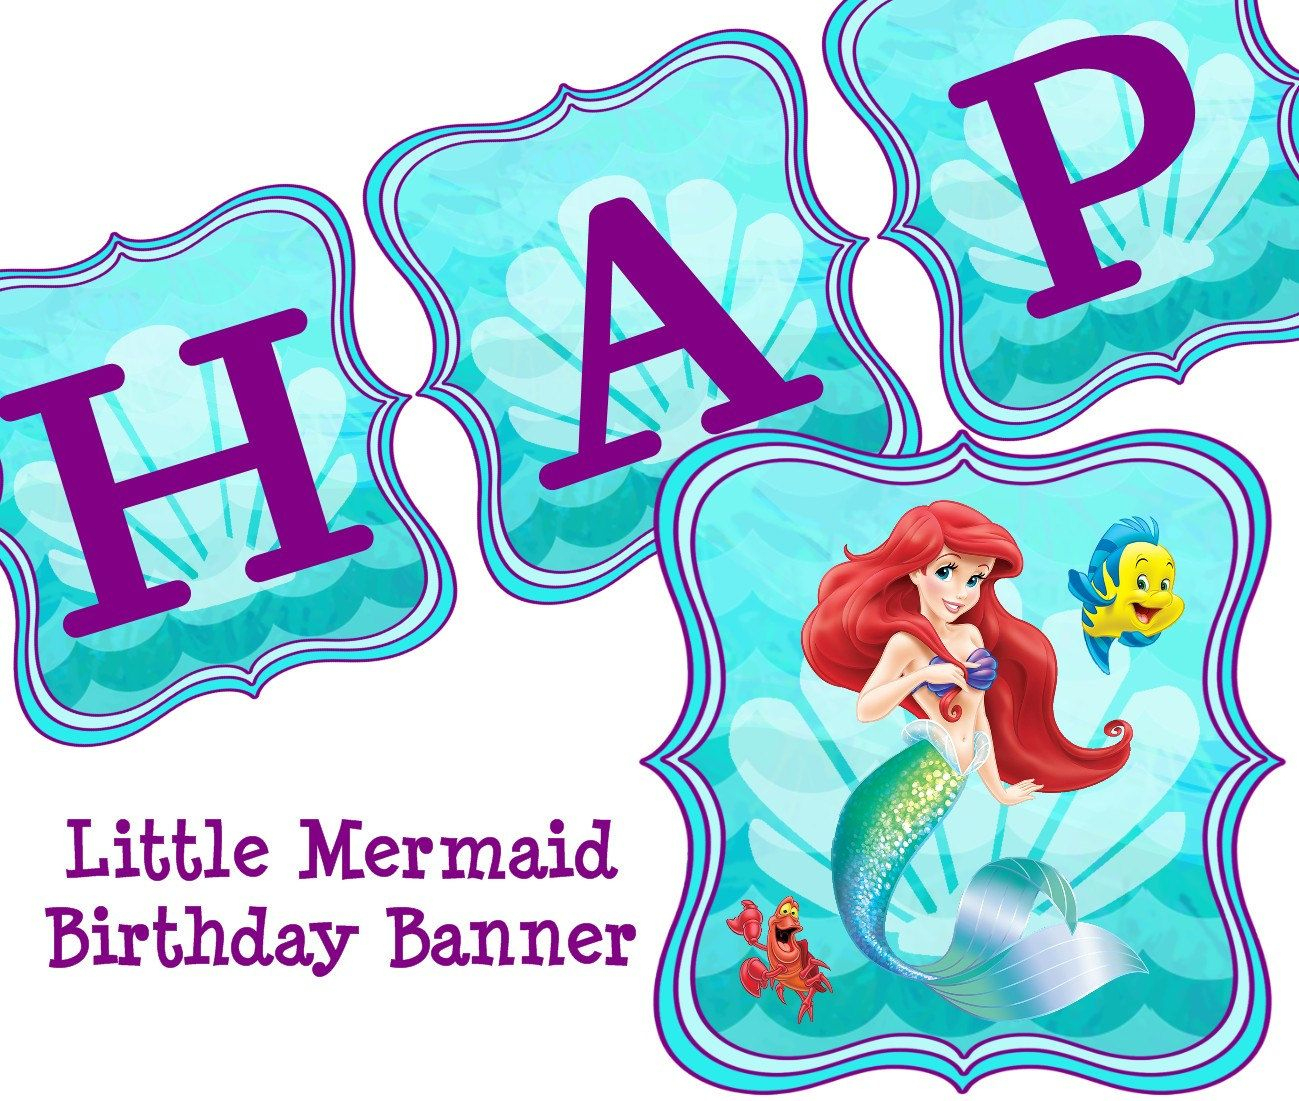 Little Mermaid Free Party Printables - Buscar Con Google | Petite - Free Printable Little Mermaid Birthday Banner